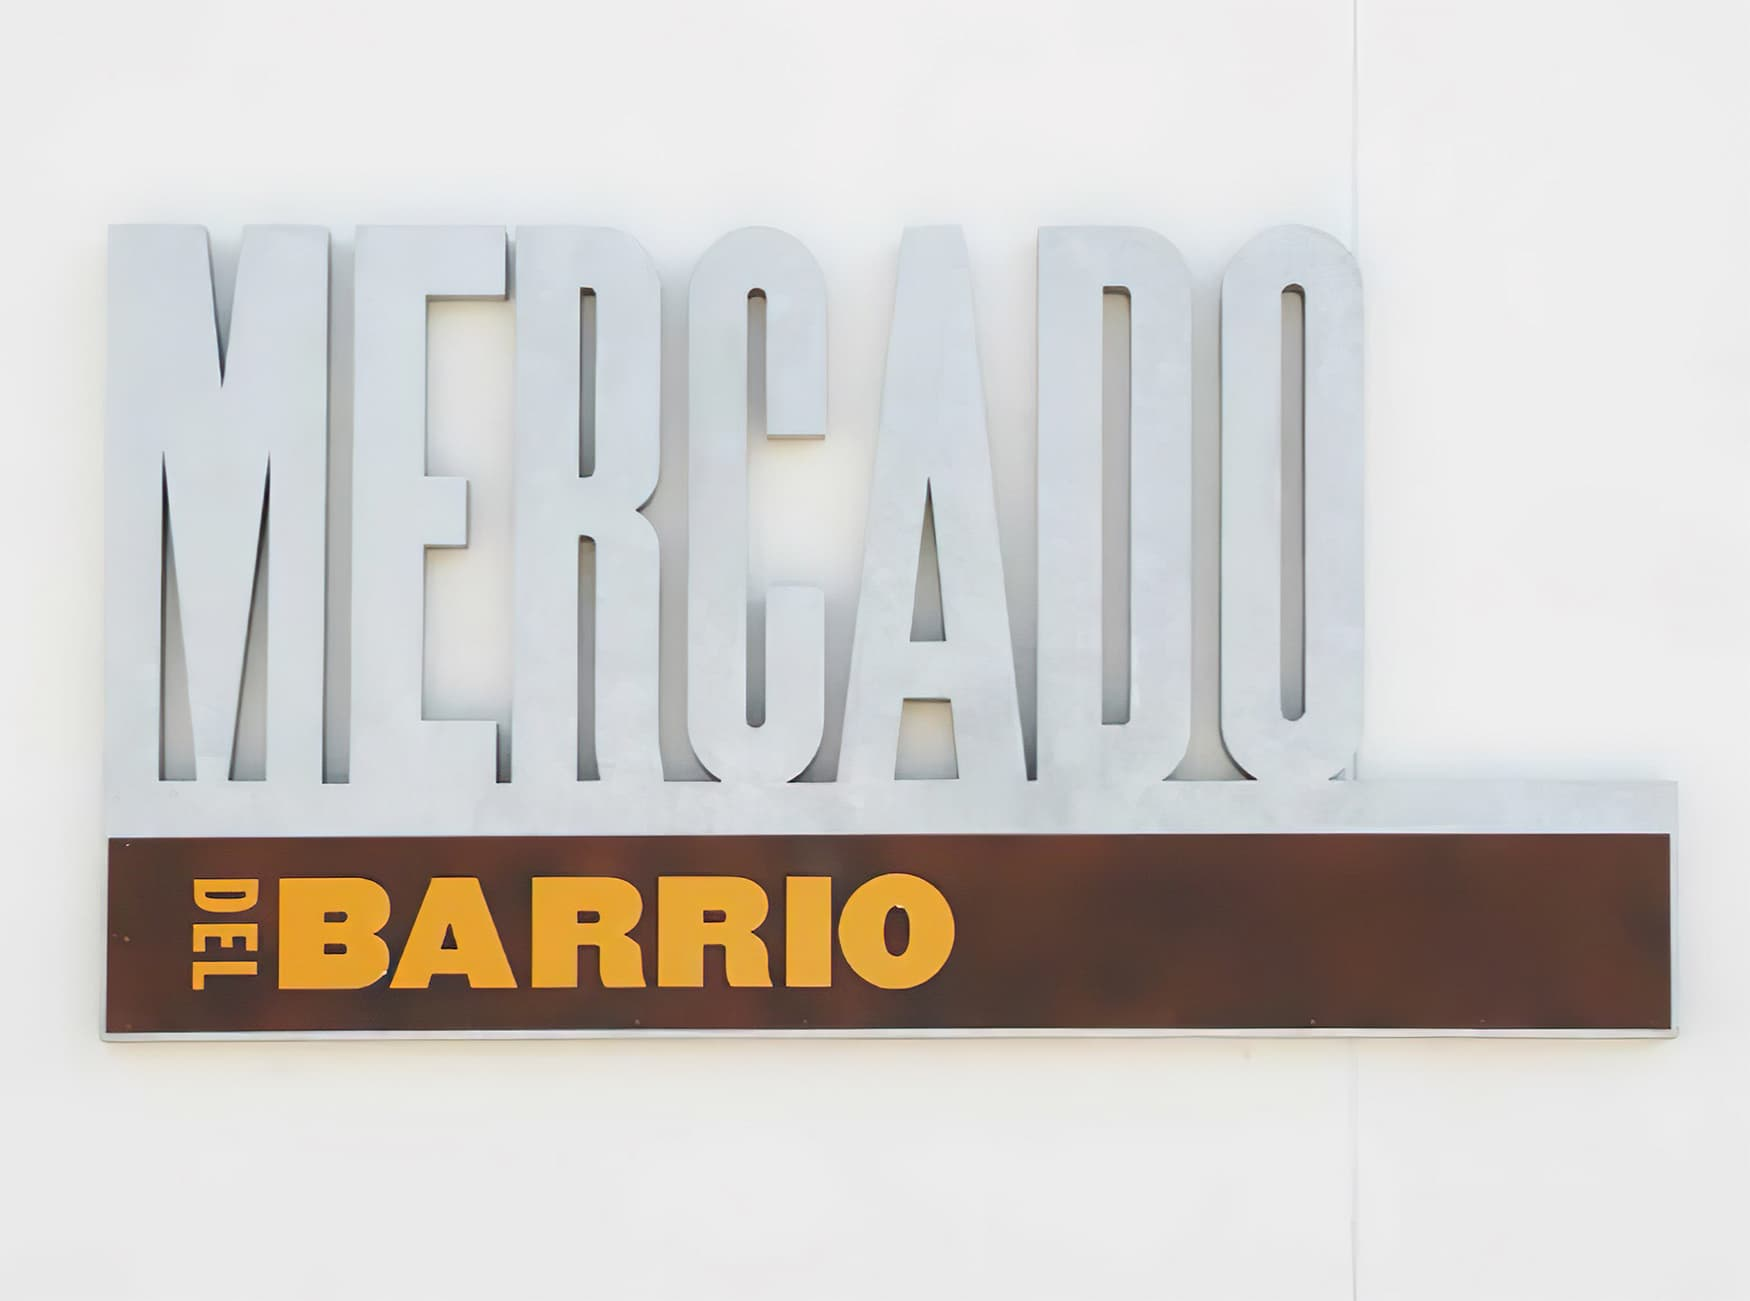 RSM Design worked with Shea Properties to prepare wayfinding signage, environmental graphics, and placemaking elements for Mercado del Barrio, a residential and commercial mixed-use development located in San Diego, California. Identity Signage.